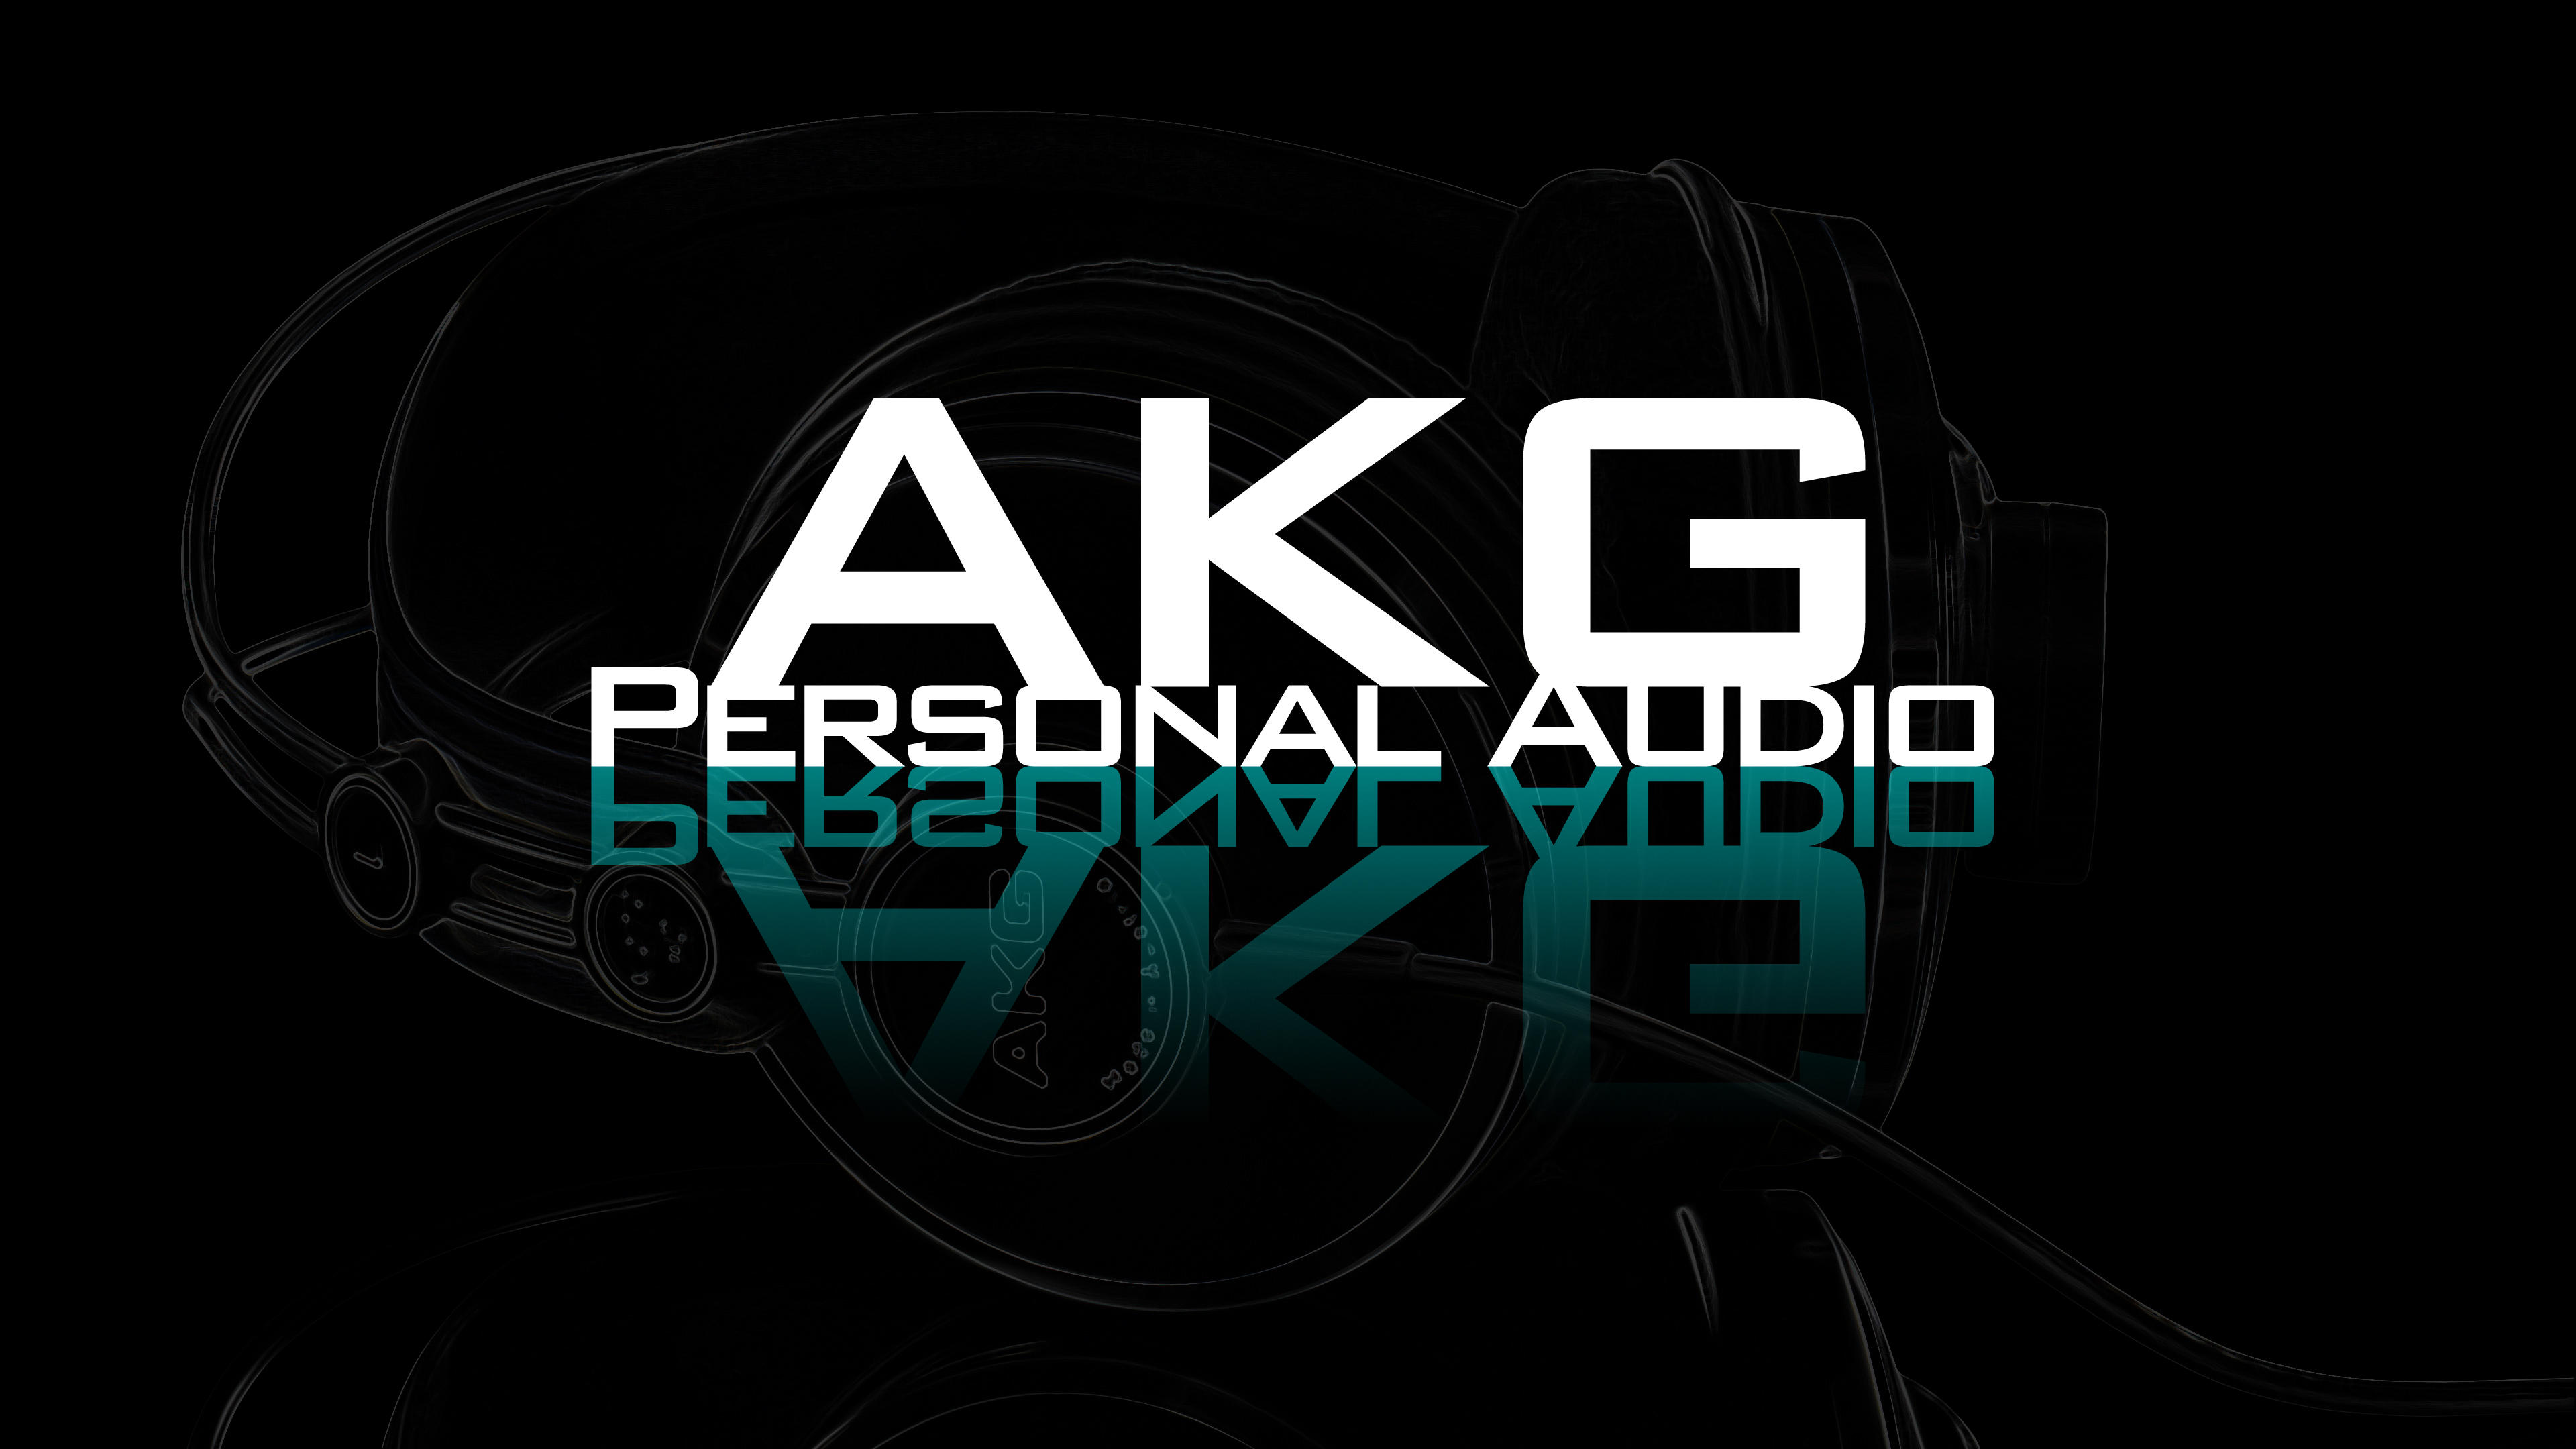 AKG Personal Audio by ~KillingTheEngine on deviantART